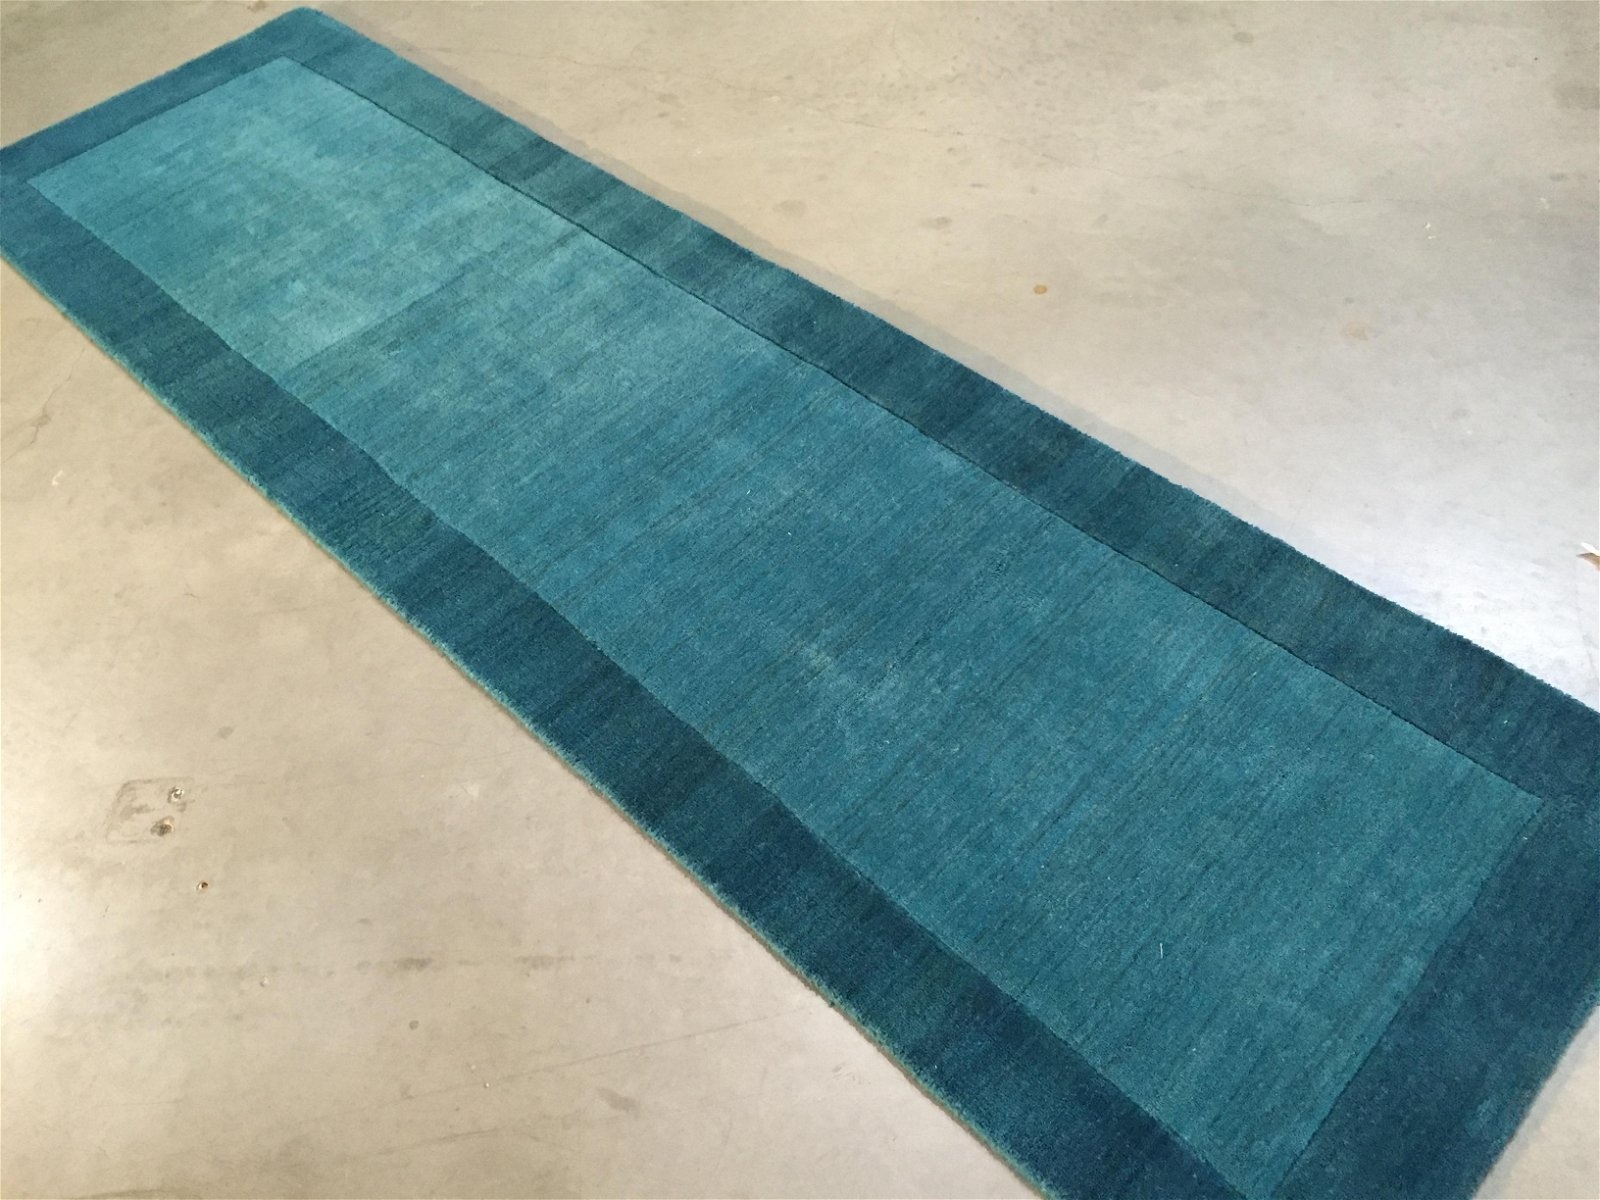 SOLID TWO TONE DESIGN HAND MADE & CARVED WOOL RUNNER 9